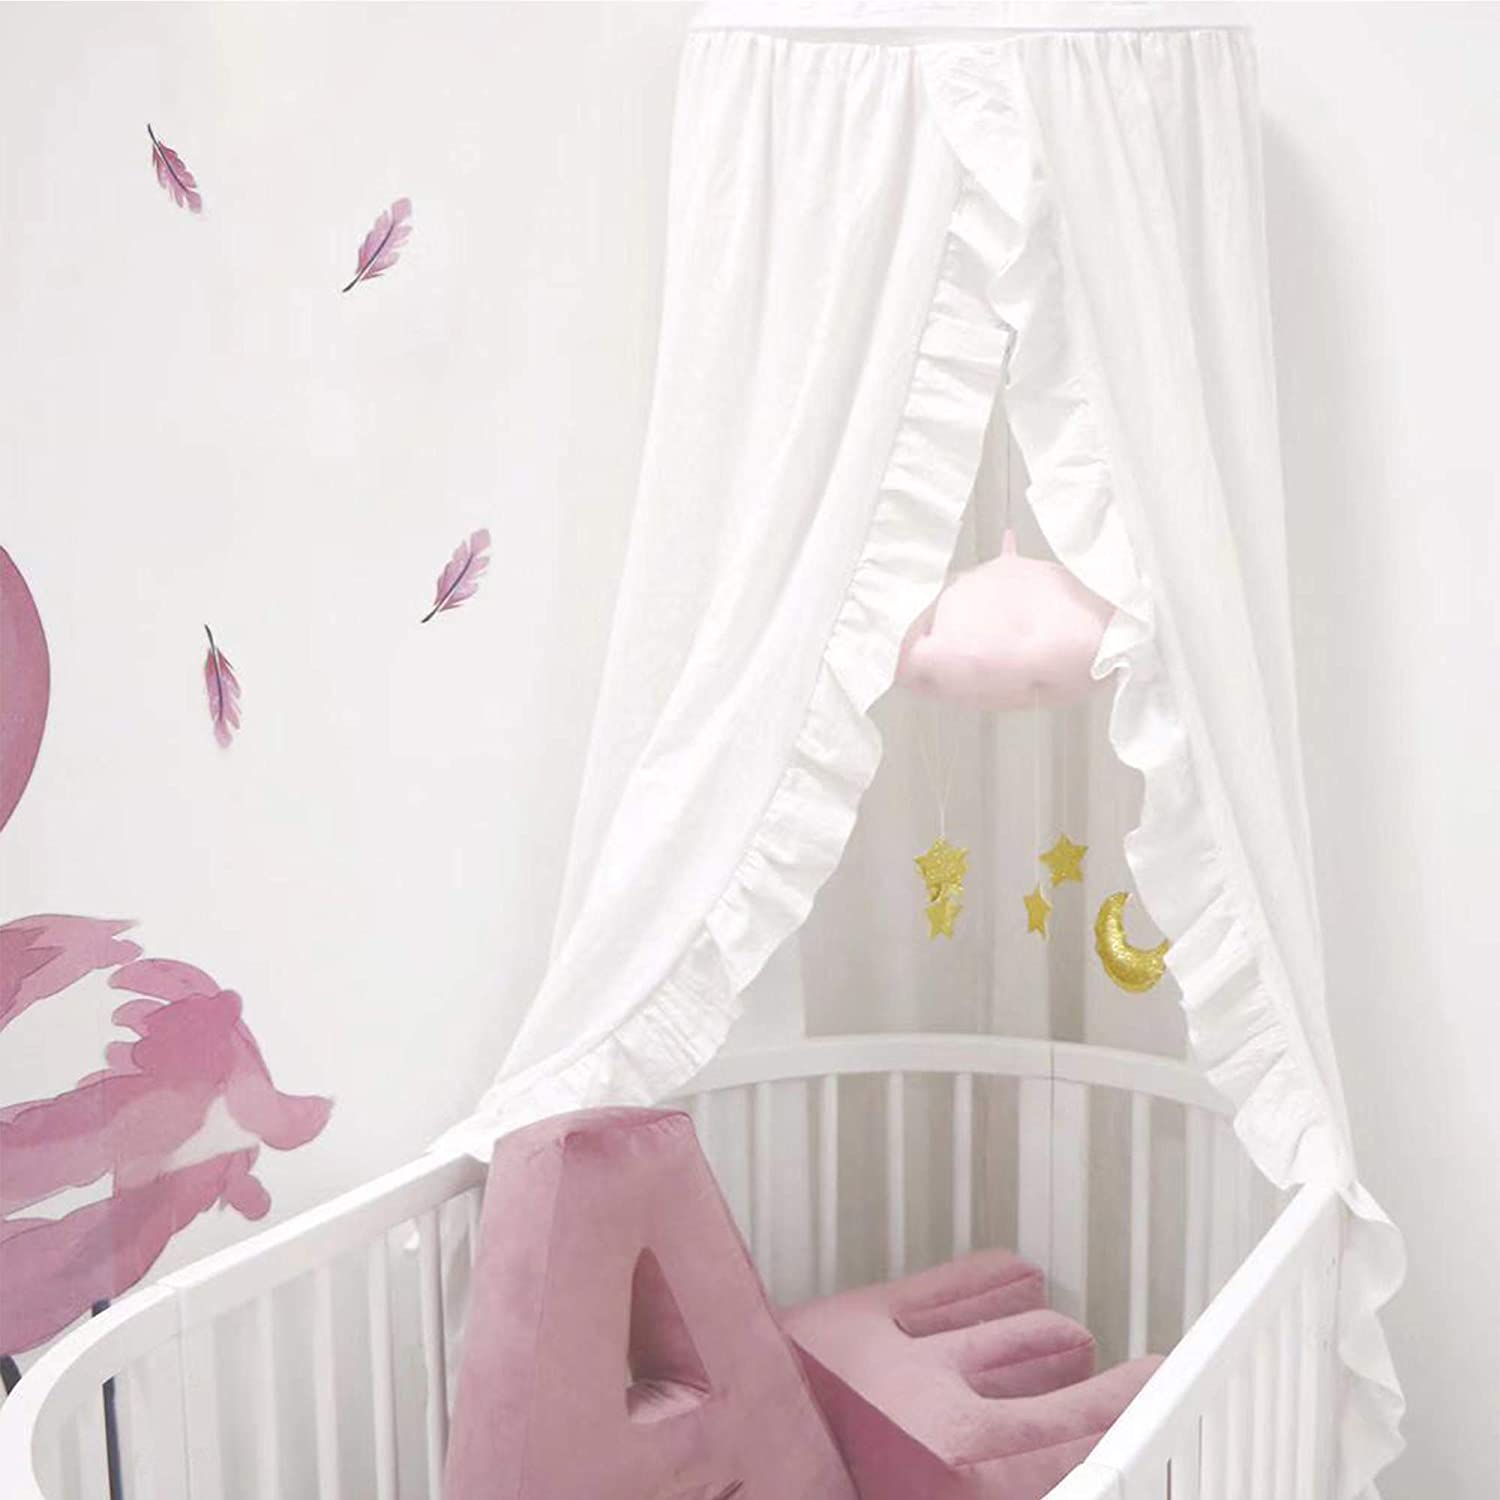 MOMAID Baby Bed Canopy with Frills Crib Reading Nook Game Tent for Kids Hanging Mosquito Net Nursery Play Room Decor (White)